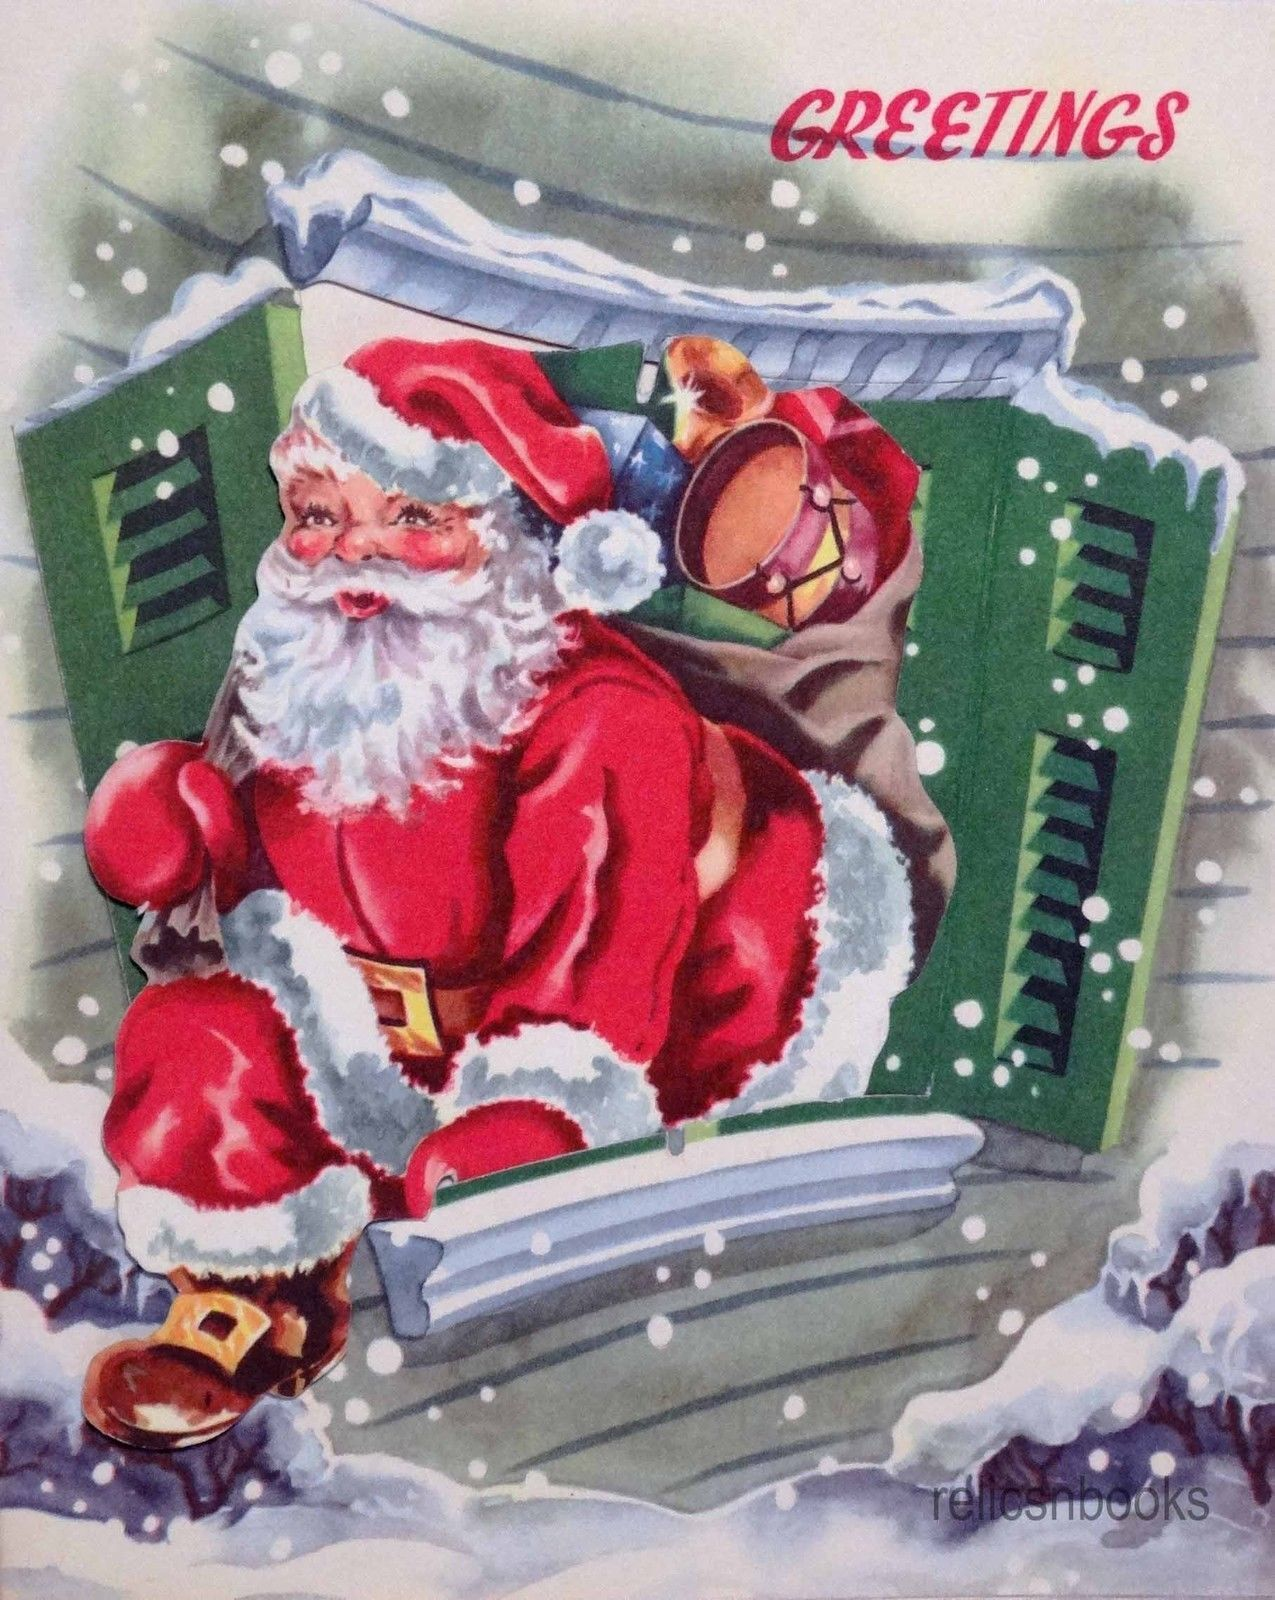 1074 50s Removable Diecut Santa in The Window Vintage Christmas Card Greeting | eBay